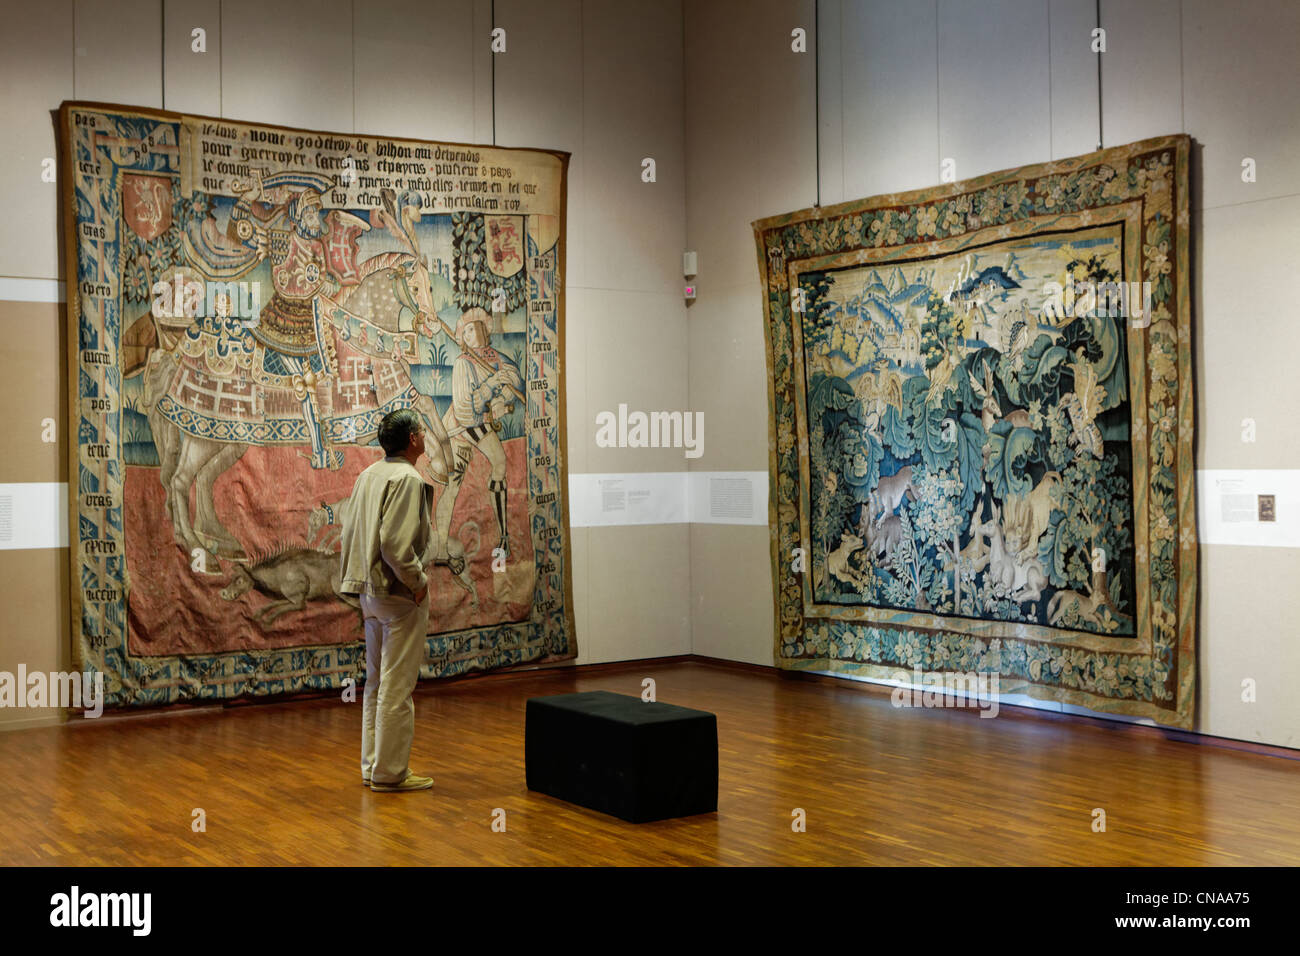 France, Creuse, Aubusson, tapestry museum, Aubusson tapestry work ...